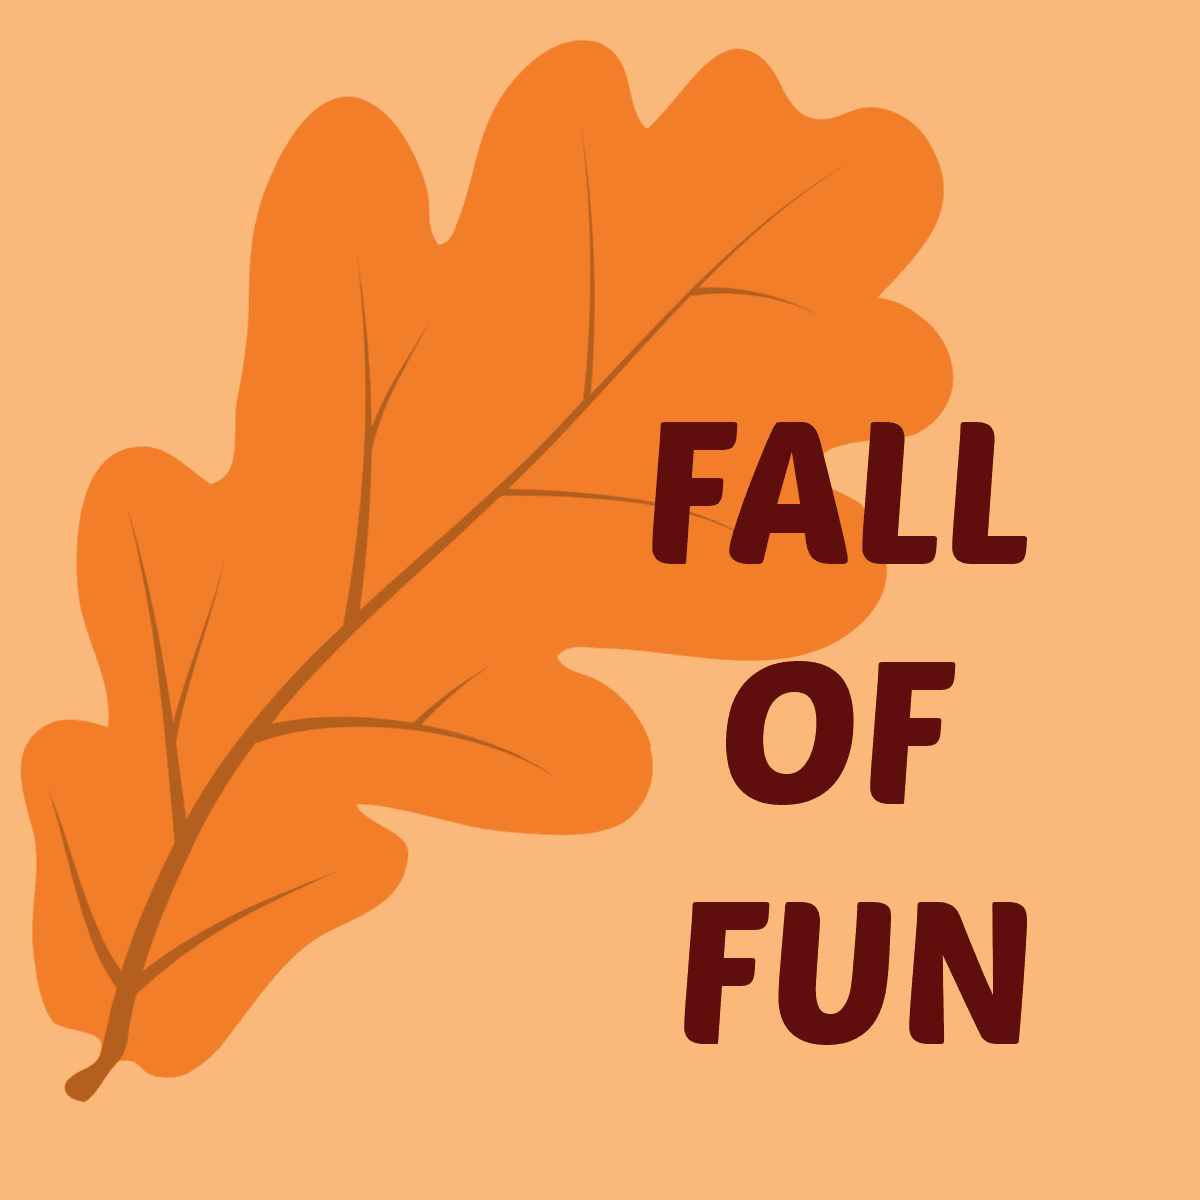 FALL OF FUN